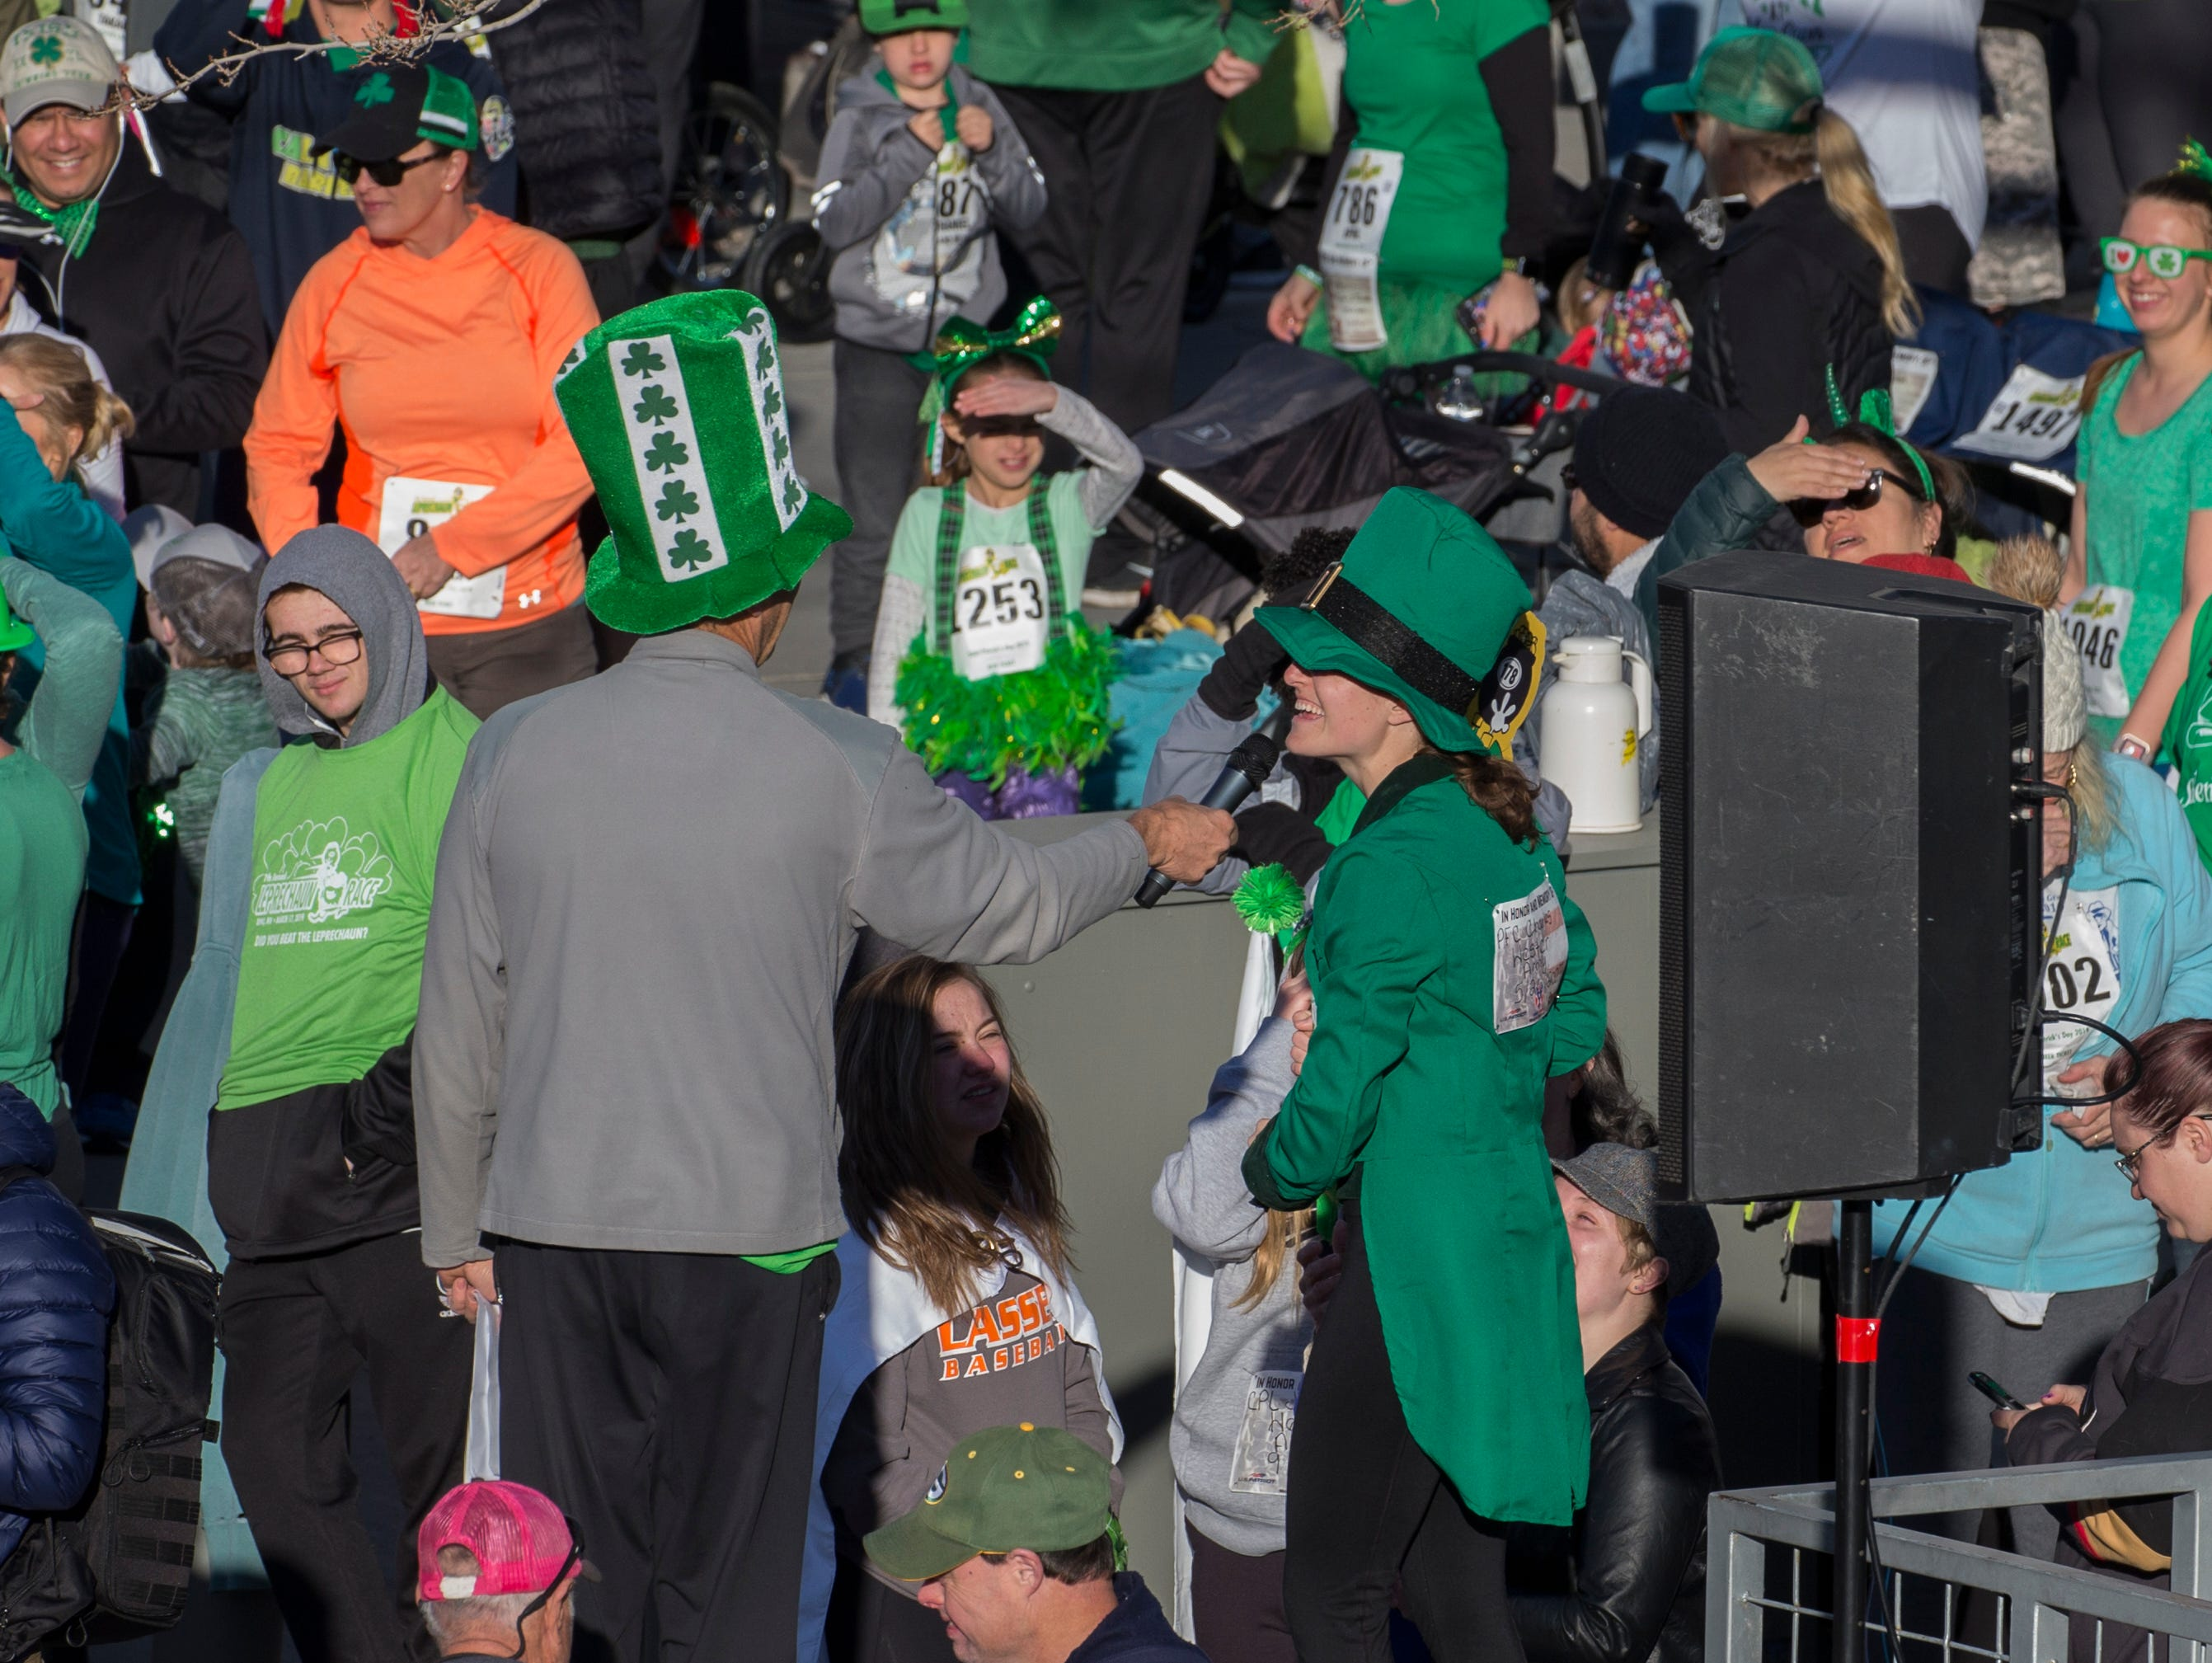 Race director Eric Lerude, center, talks with race Leprechaun Caitlin Howden before the start of the 7th annual Leprechaun Race in downtown Reno, Nevada on Sunday, March 17, 2019.